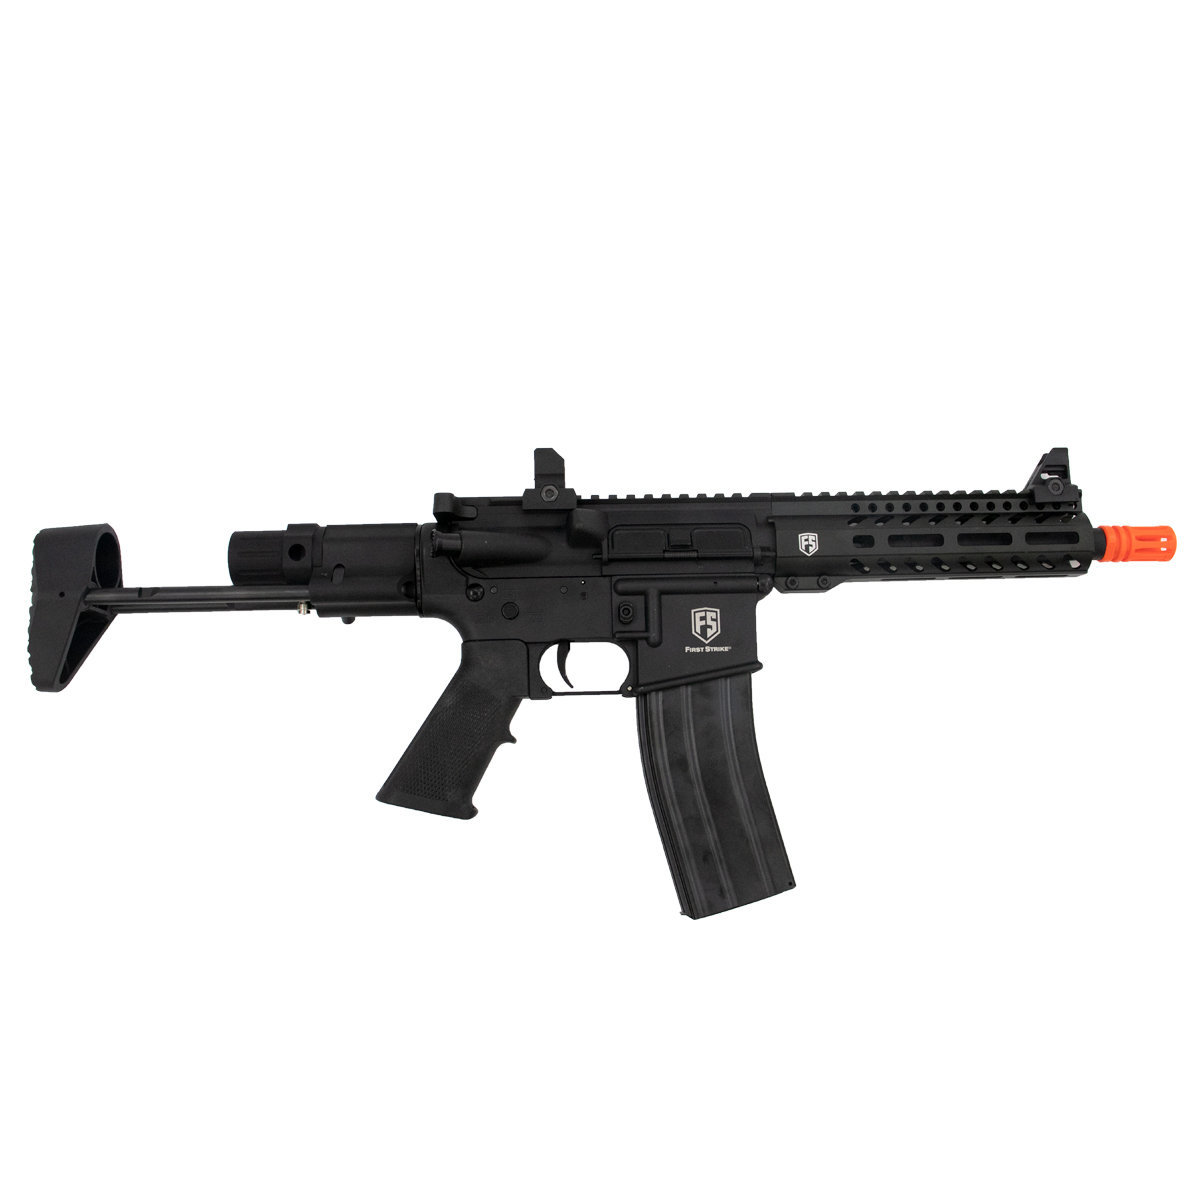 View larger image of First Strike T15A1 PDW HPA Powered Airsoft Rifle